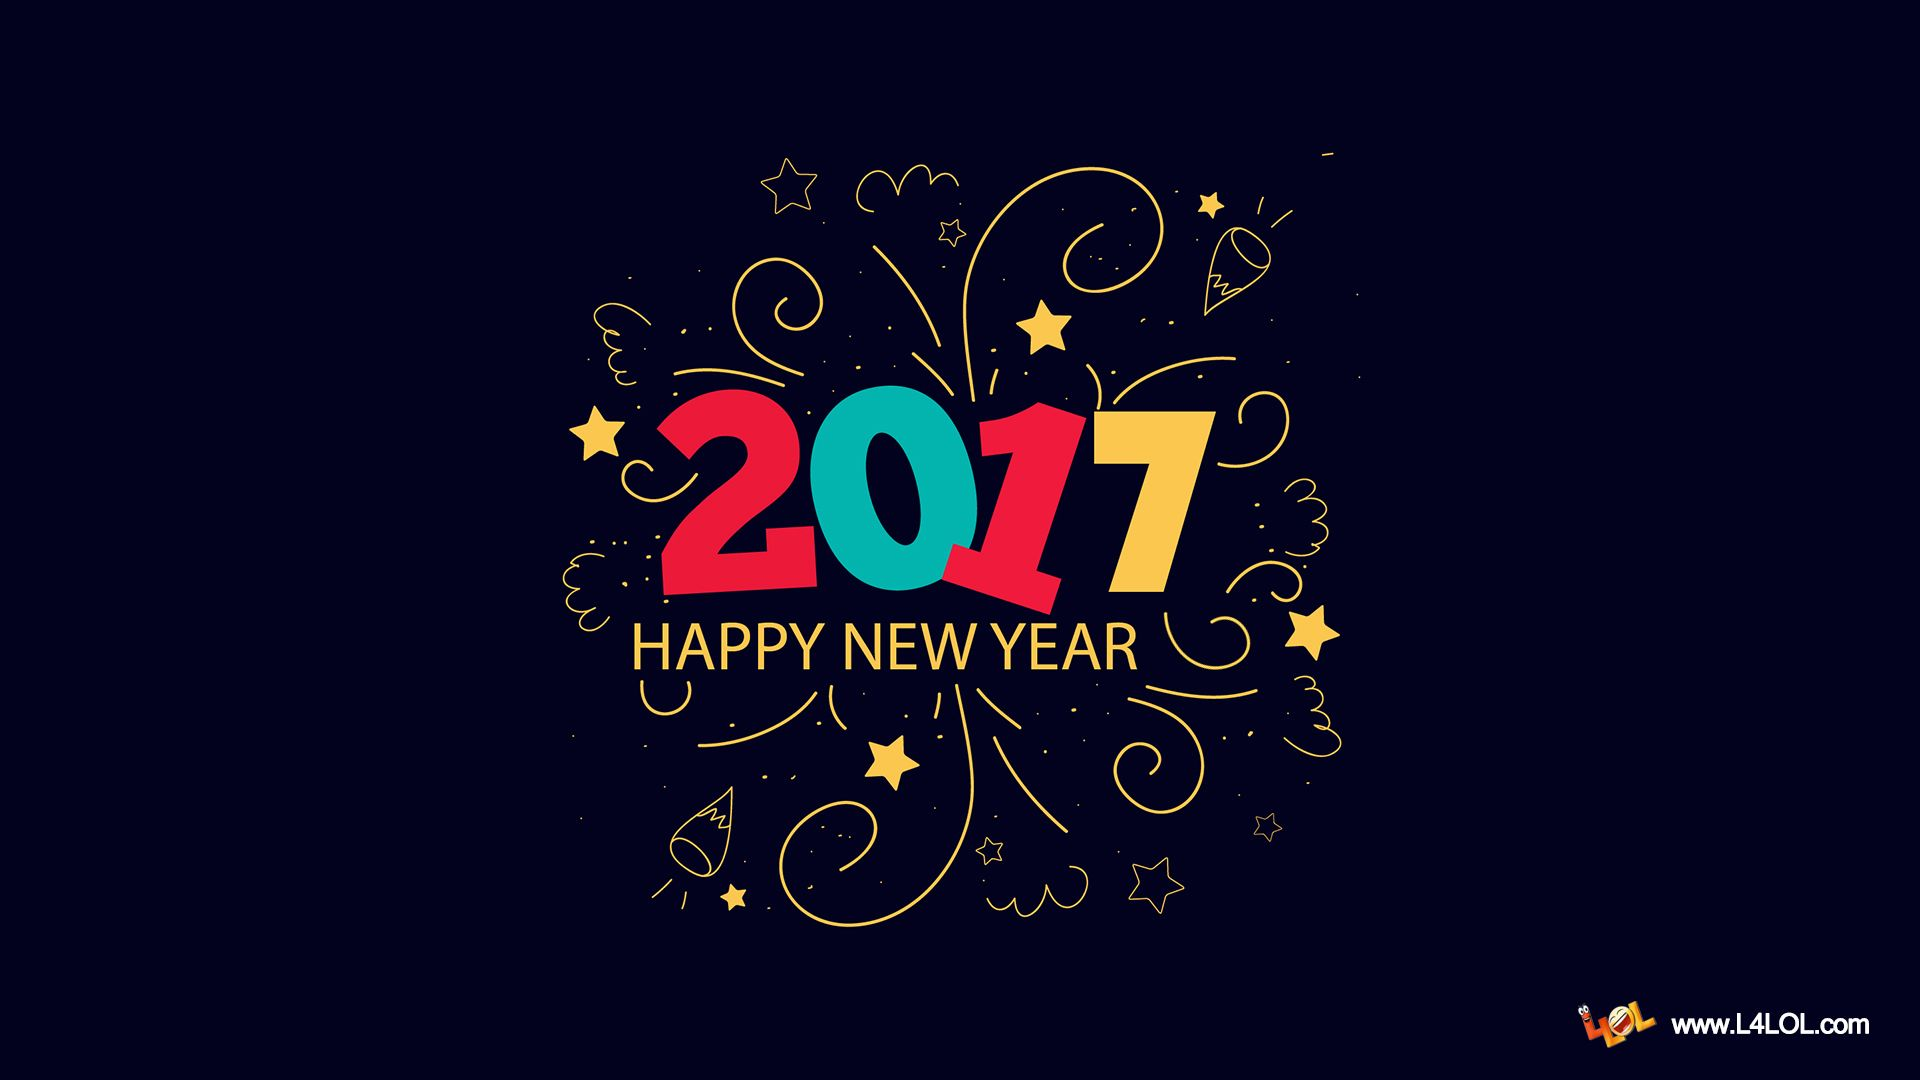 happy new year cute love quotes poems and sayings for him and her with pictures and